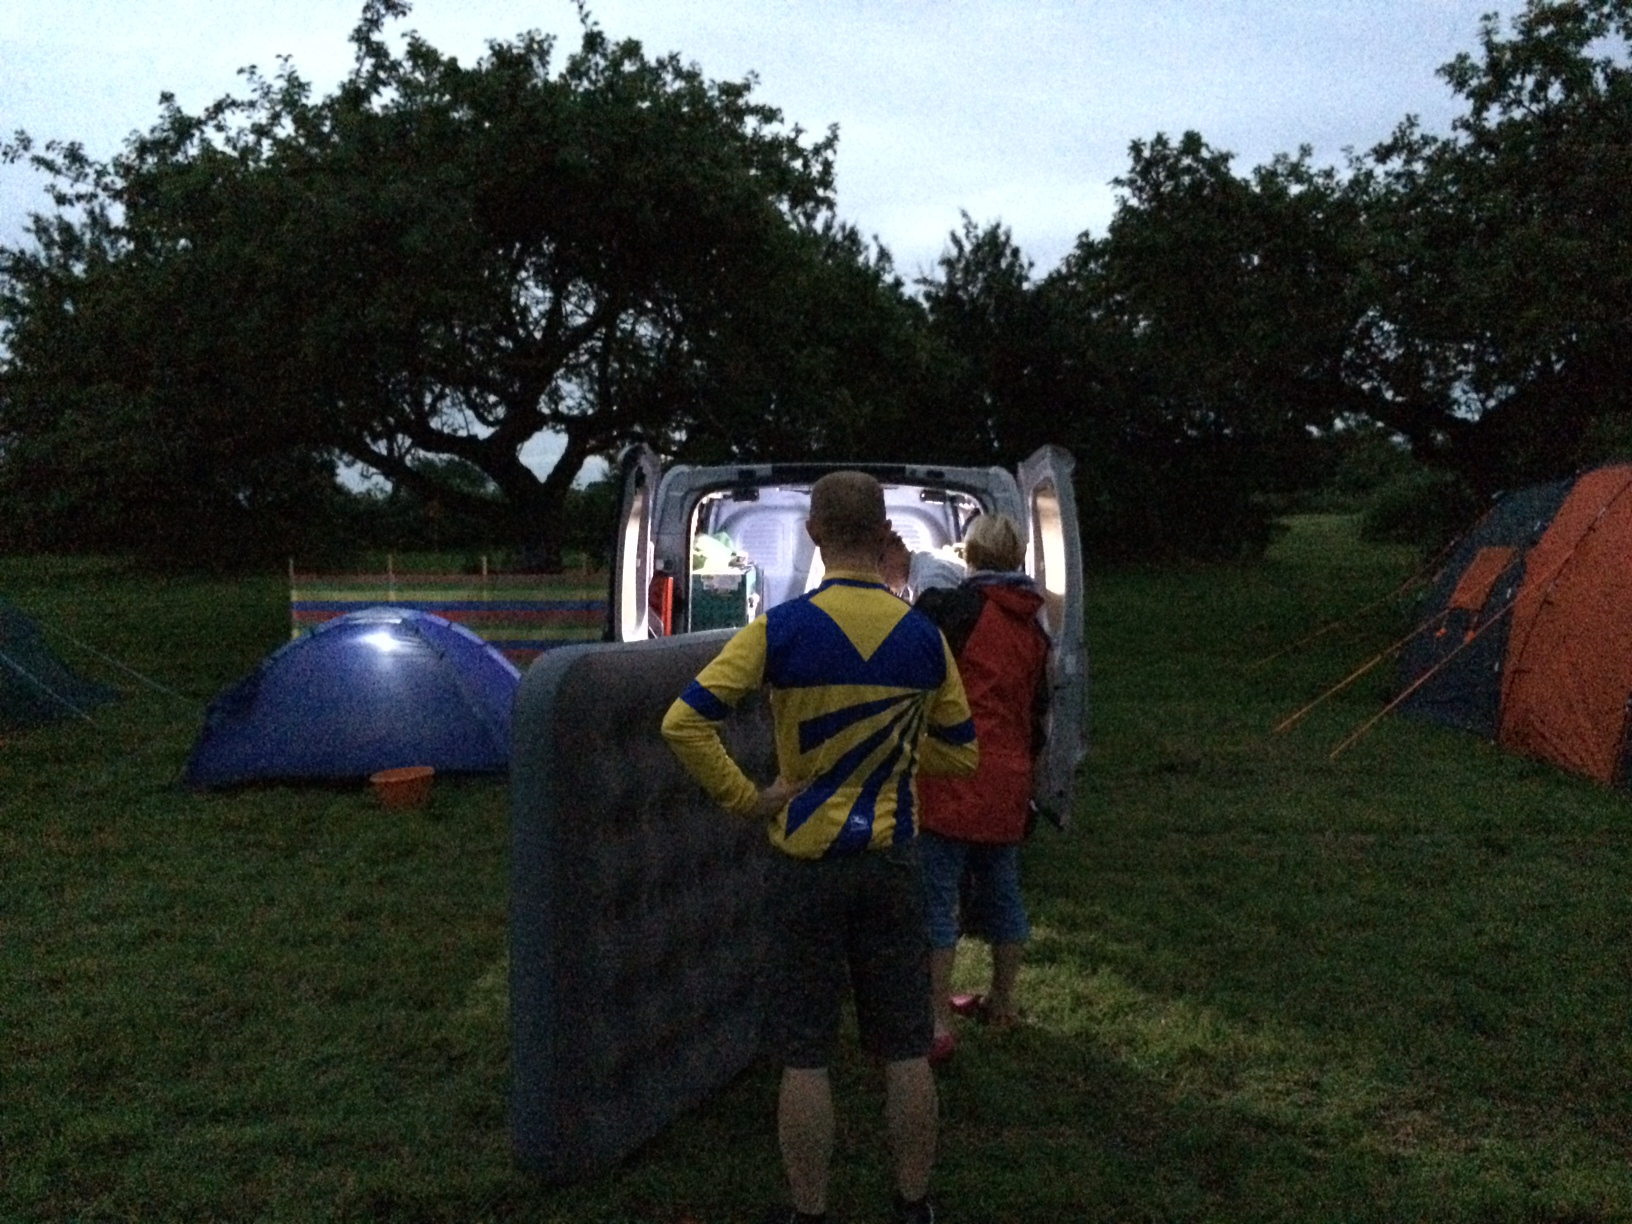 Al's midnight airbed inflating service...